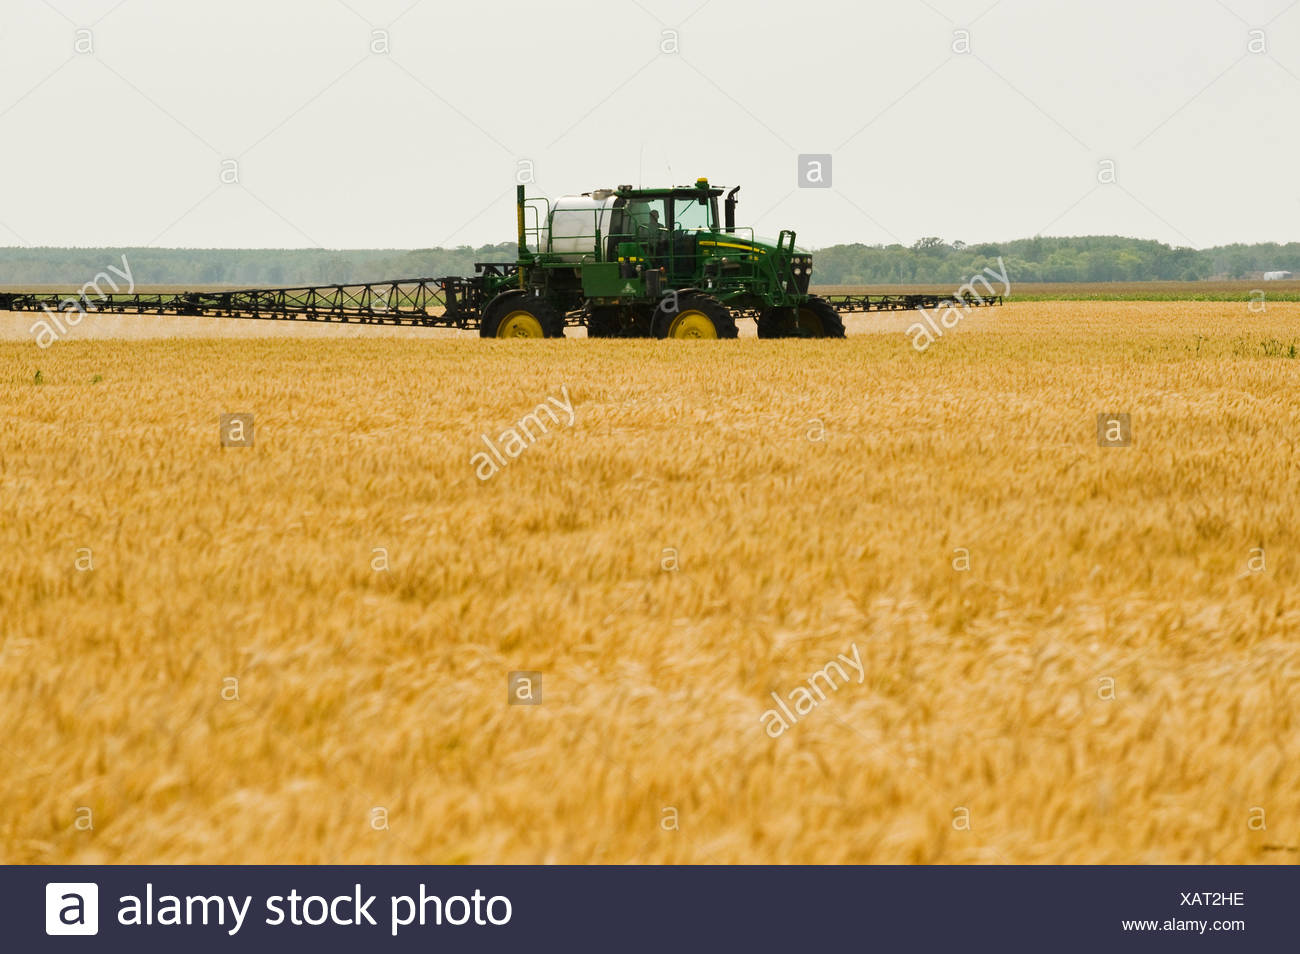 a high clearance sprayer gives a chemical application of herbicide to mature  winter wheat, near Carey, Manitoba, Canada - Stock Image